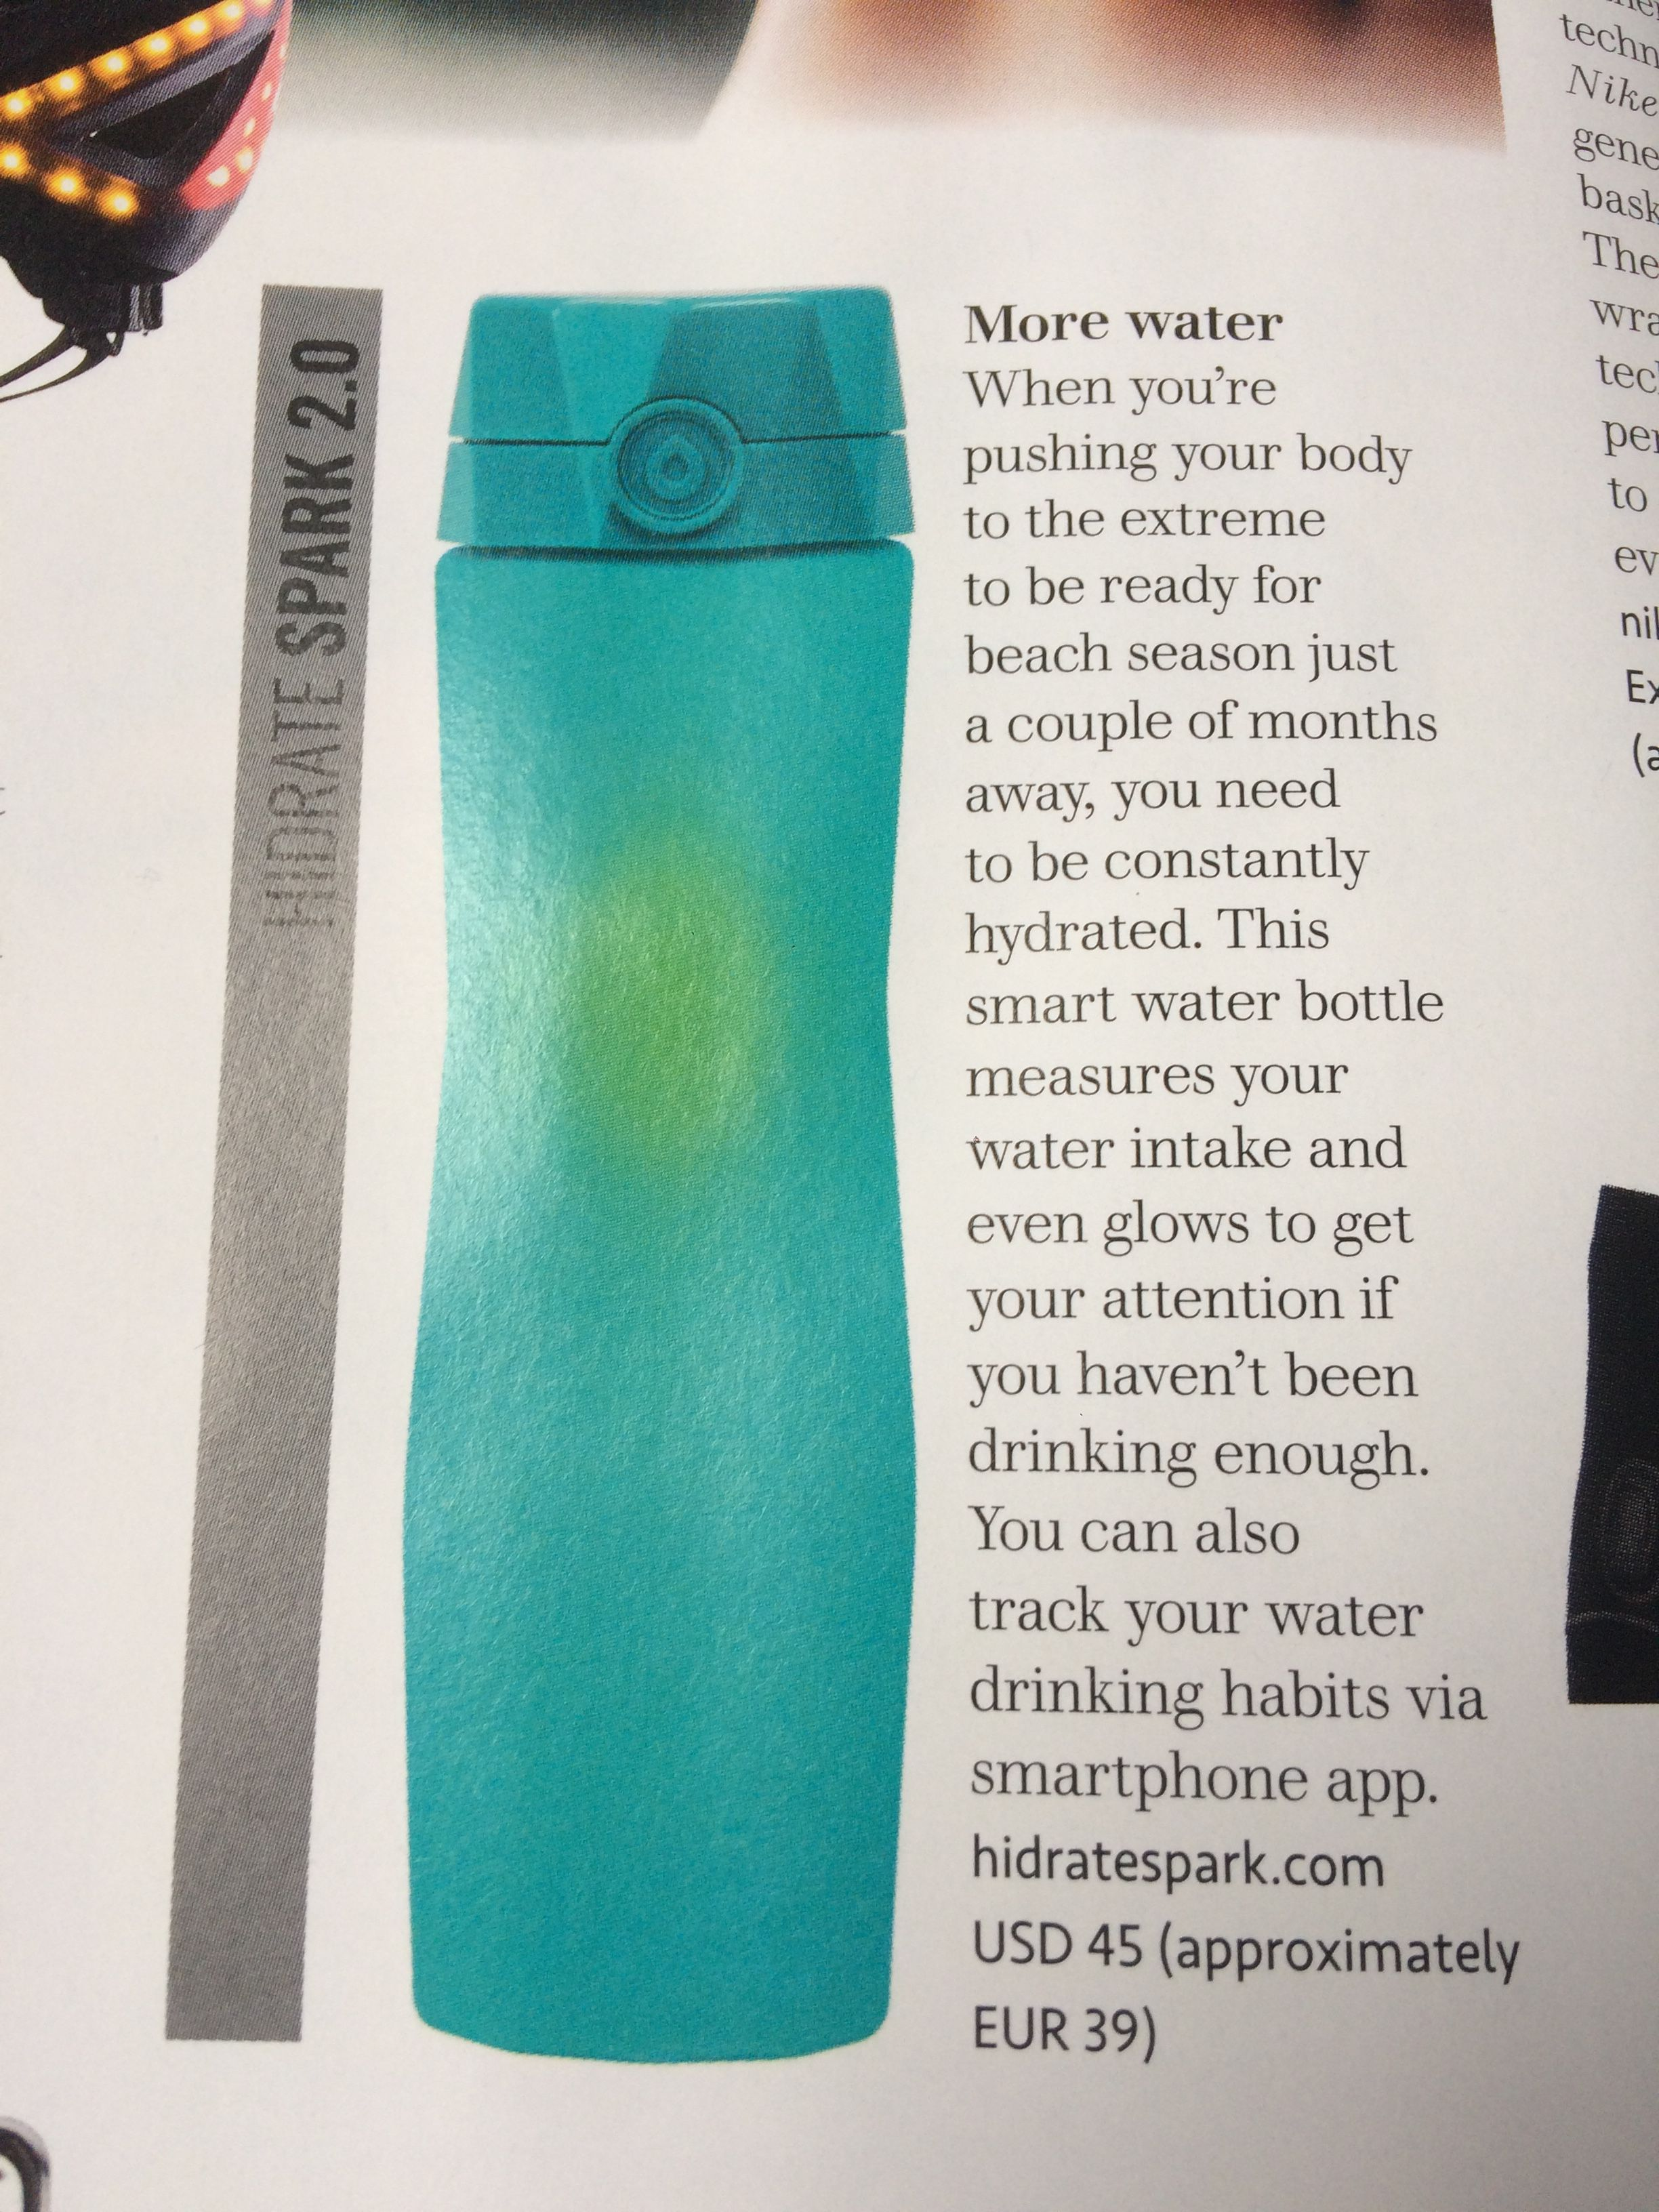 A smart water bottle measures your water intake and glows